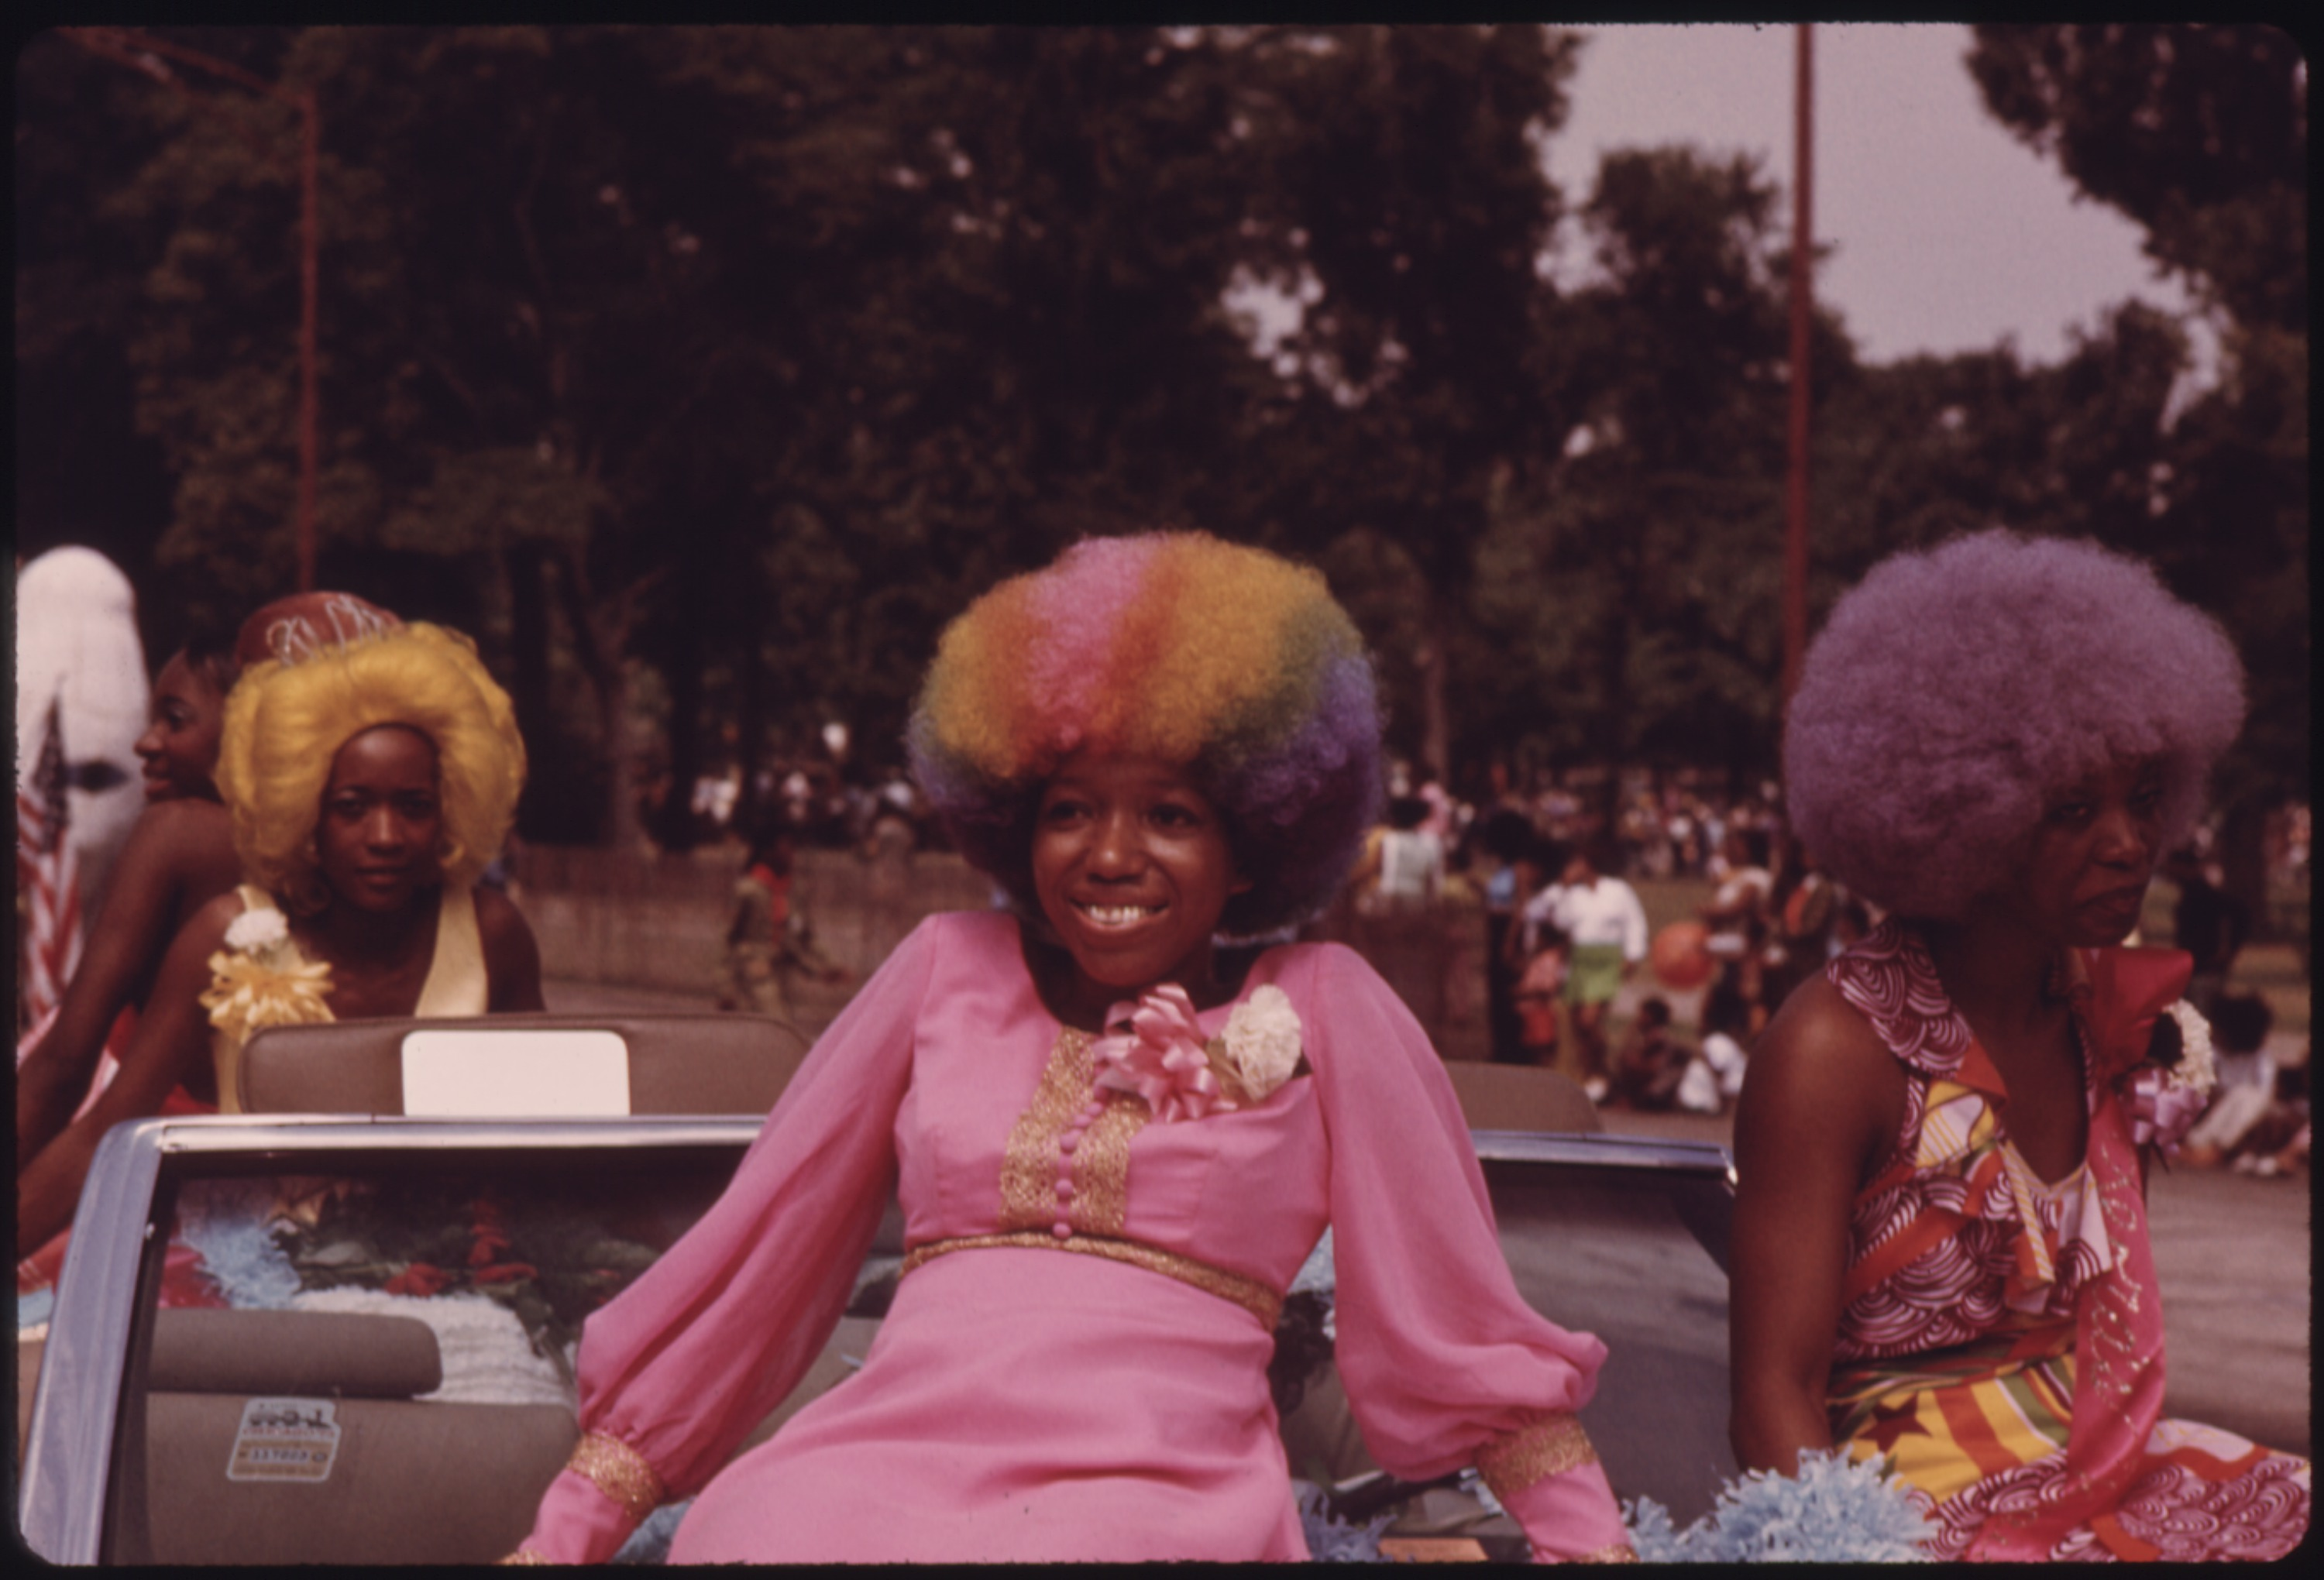 File:BLACK BEAUTIES WITH COLORFUL HAIR GRACE A FLOAT ...